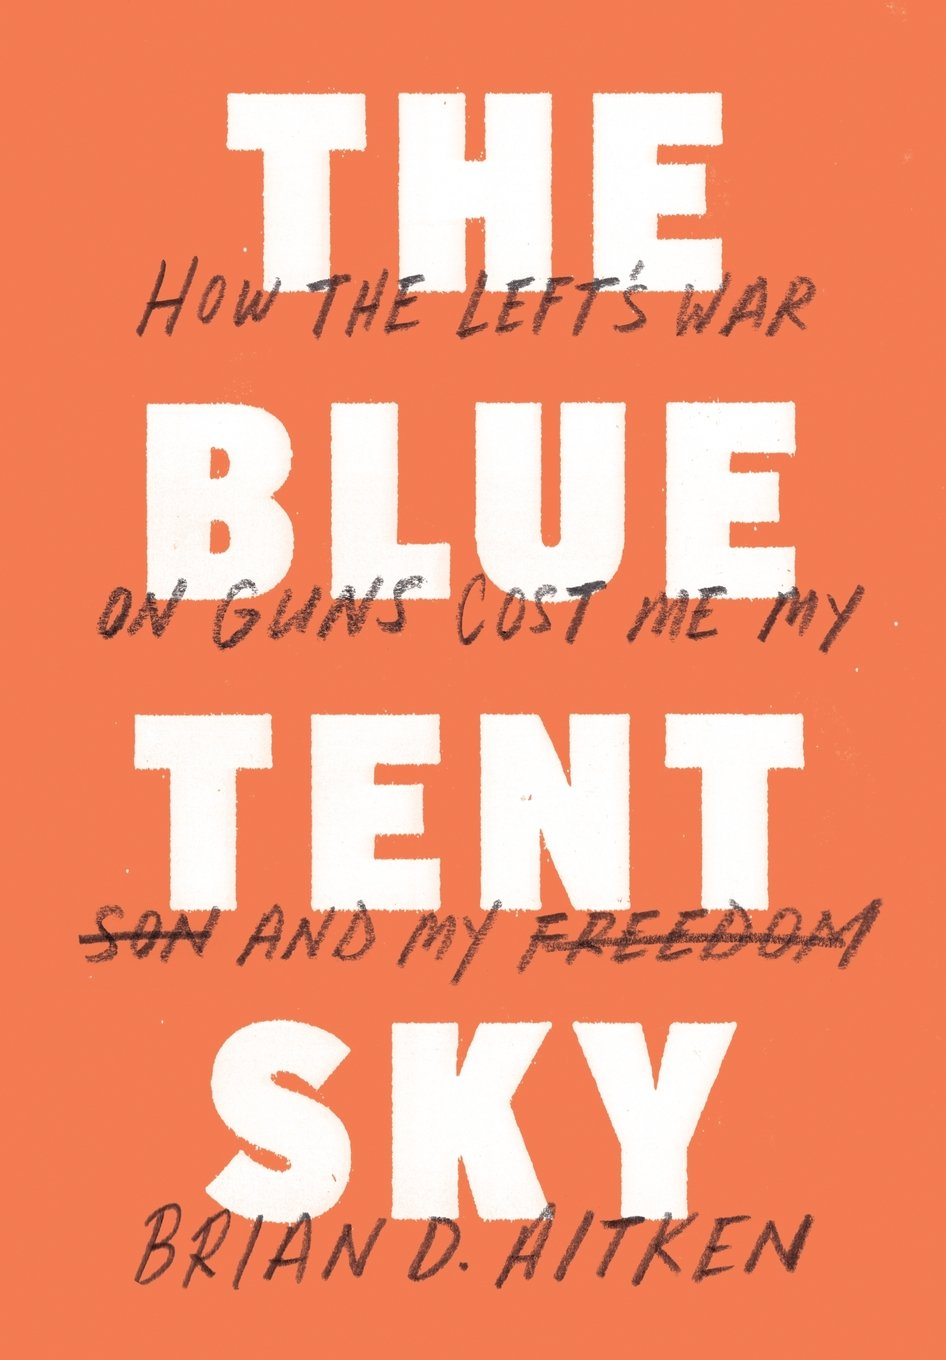 Blue Tent Sky Lefts Freedom product image